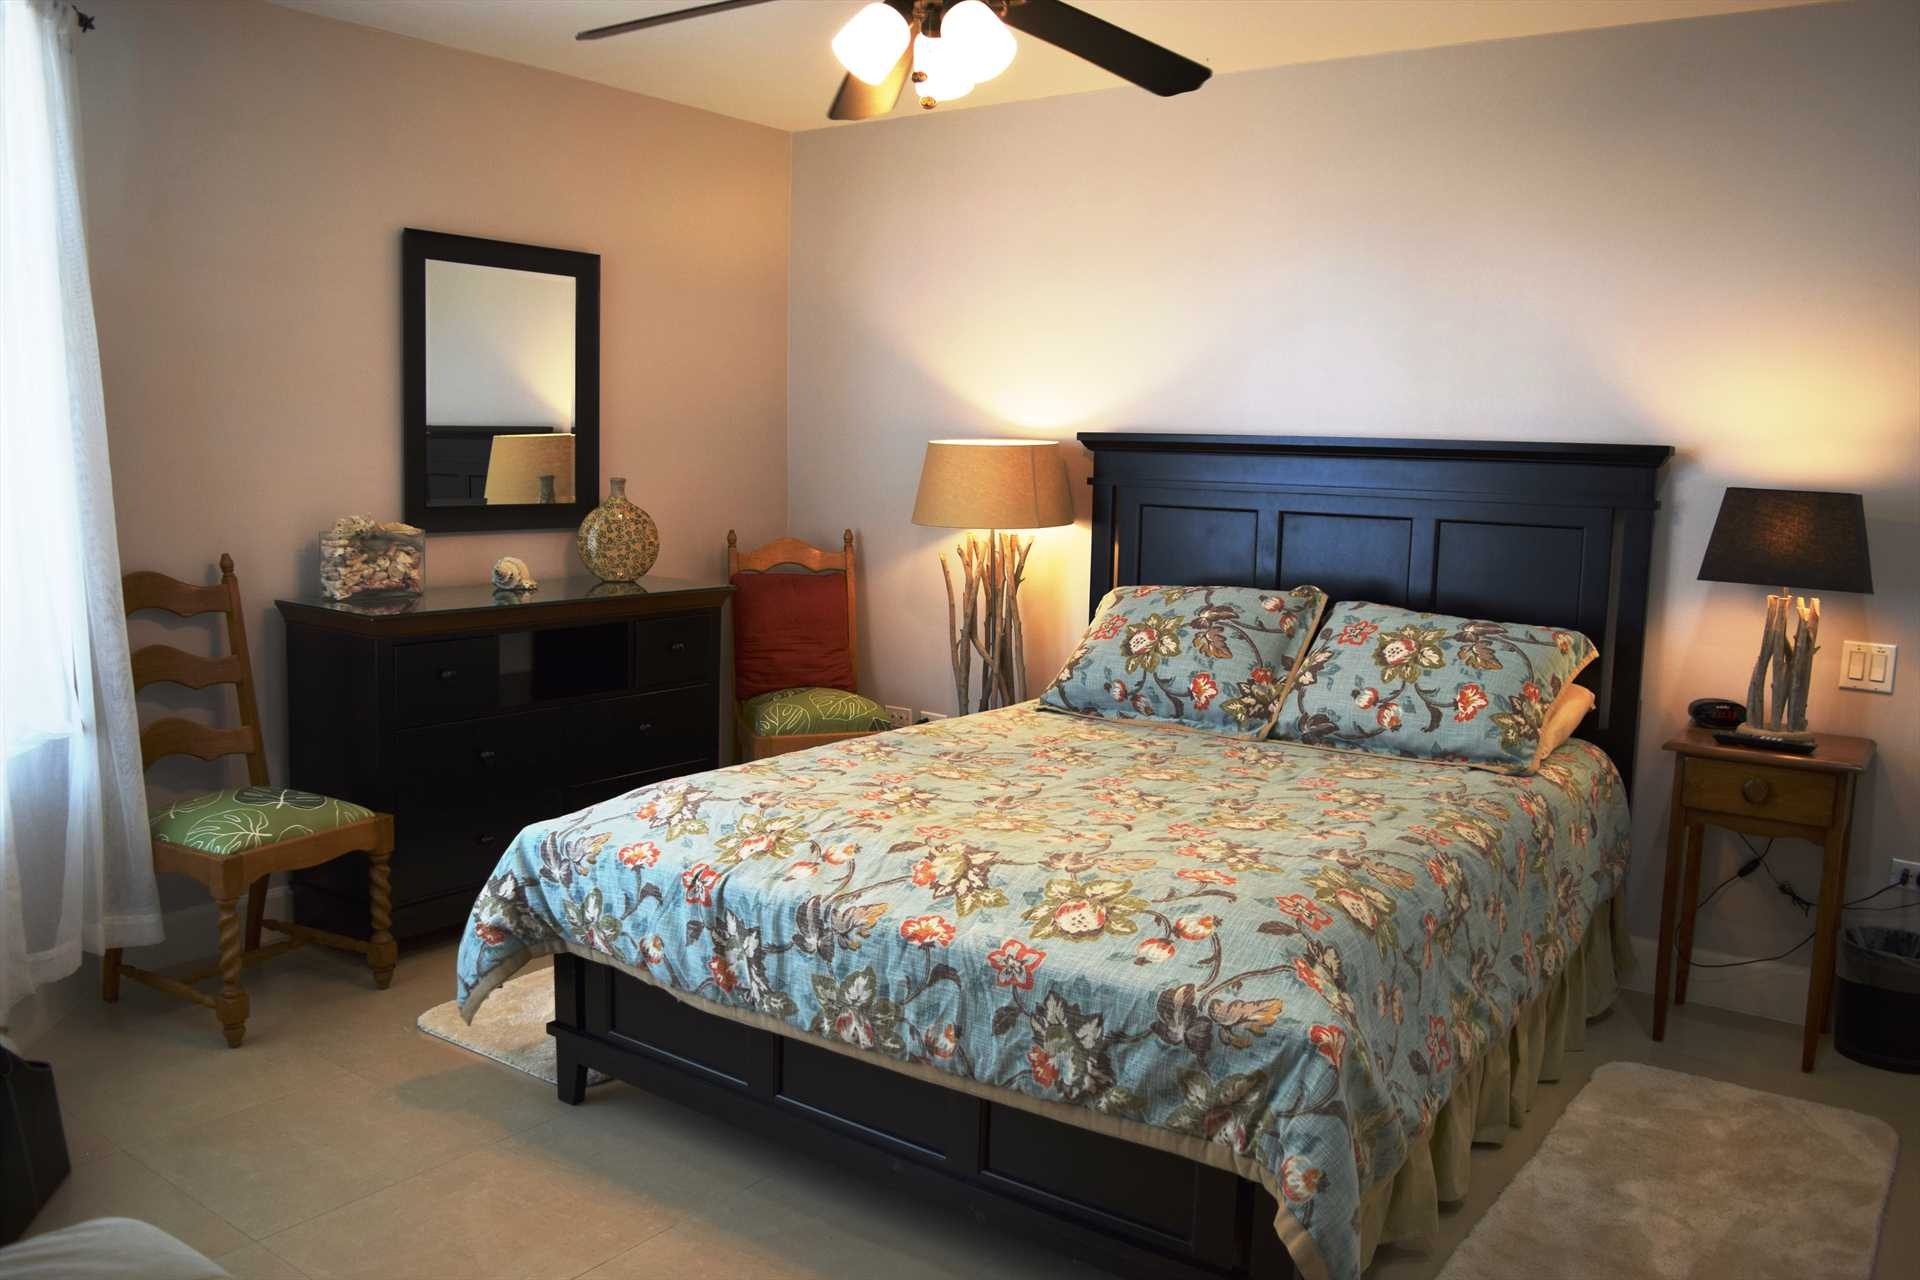 Second bedroom with queen-size bed